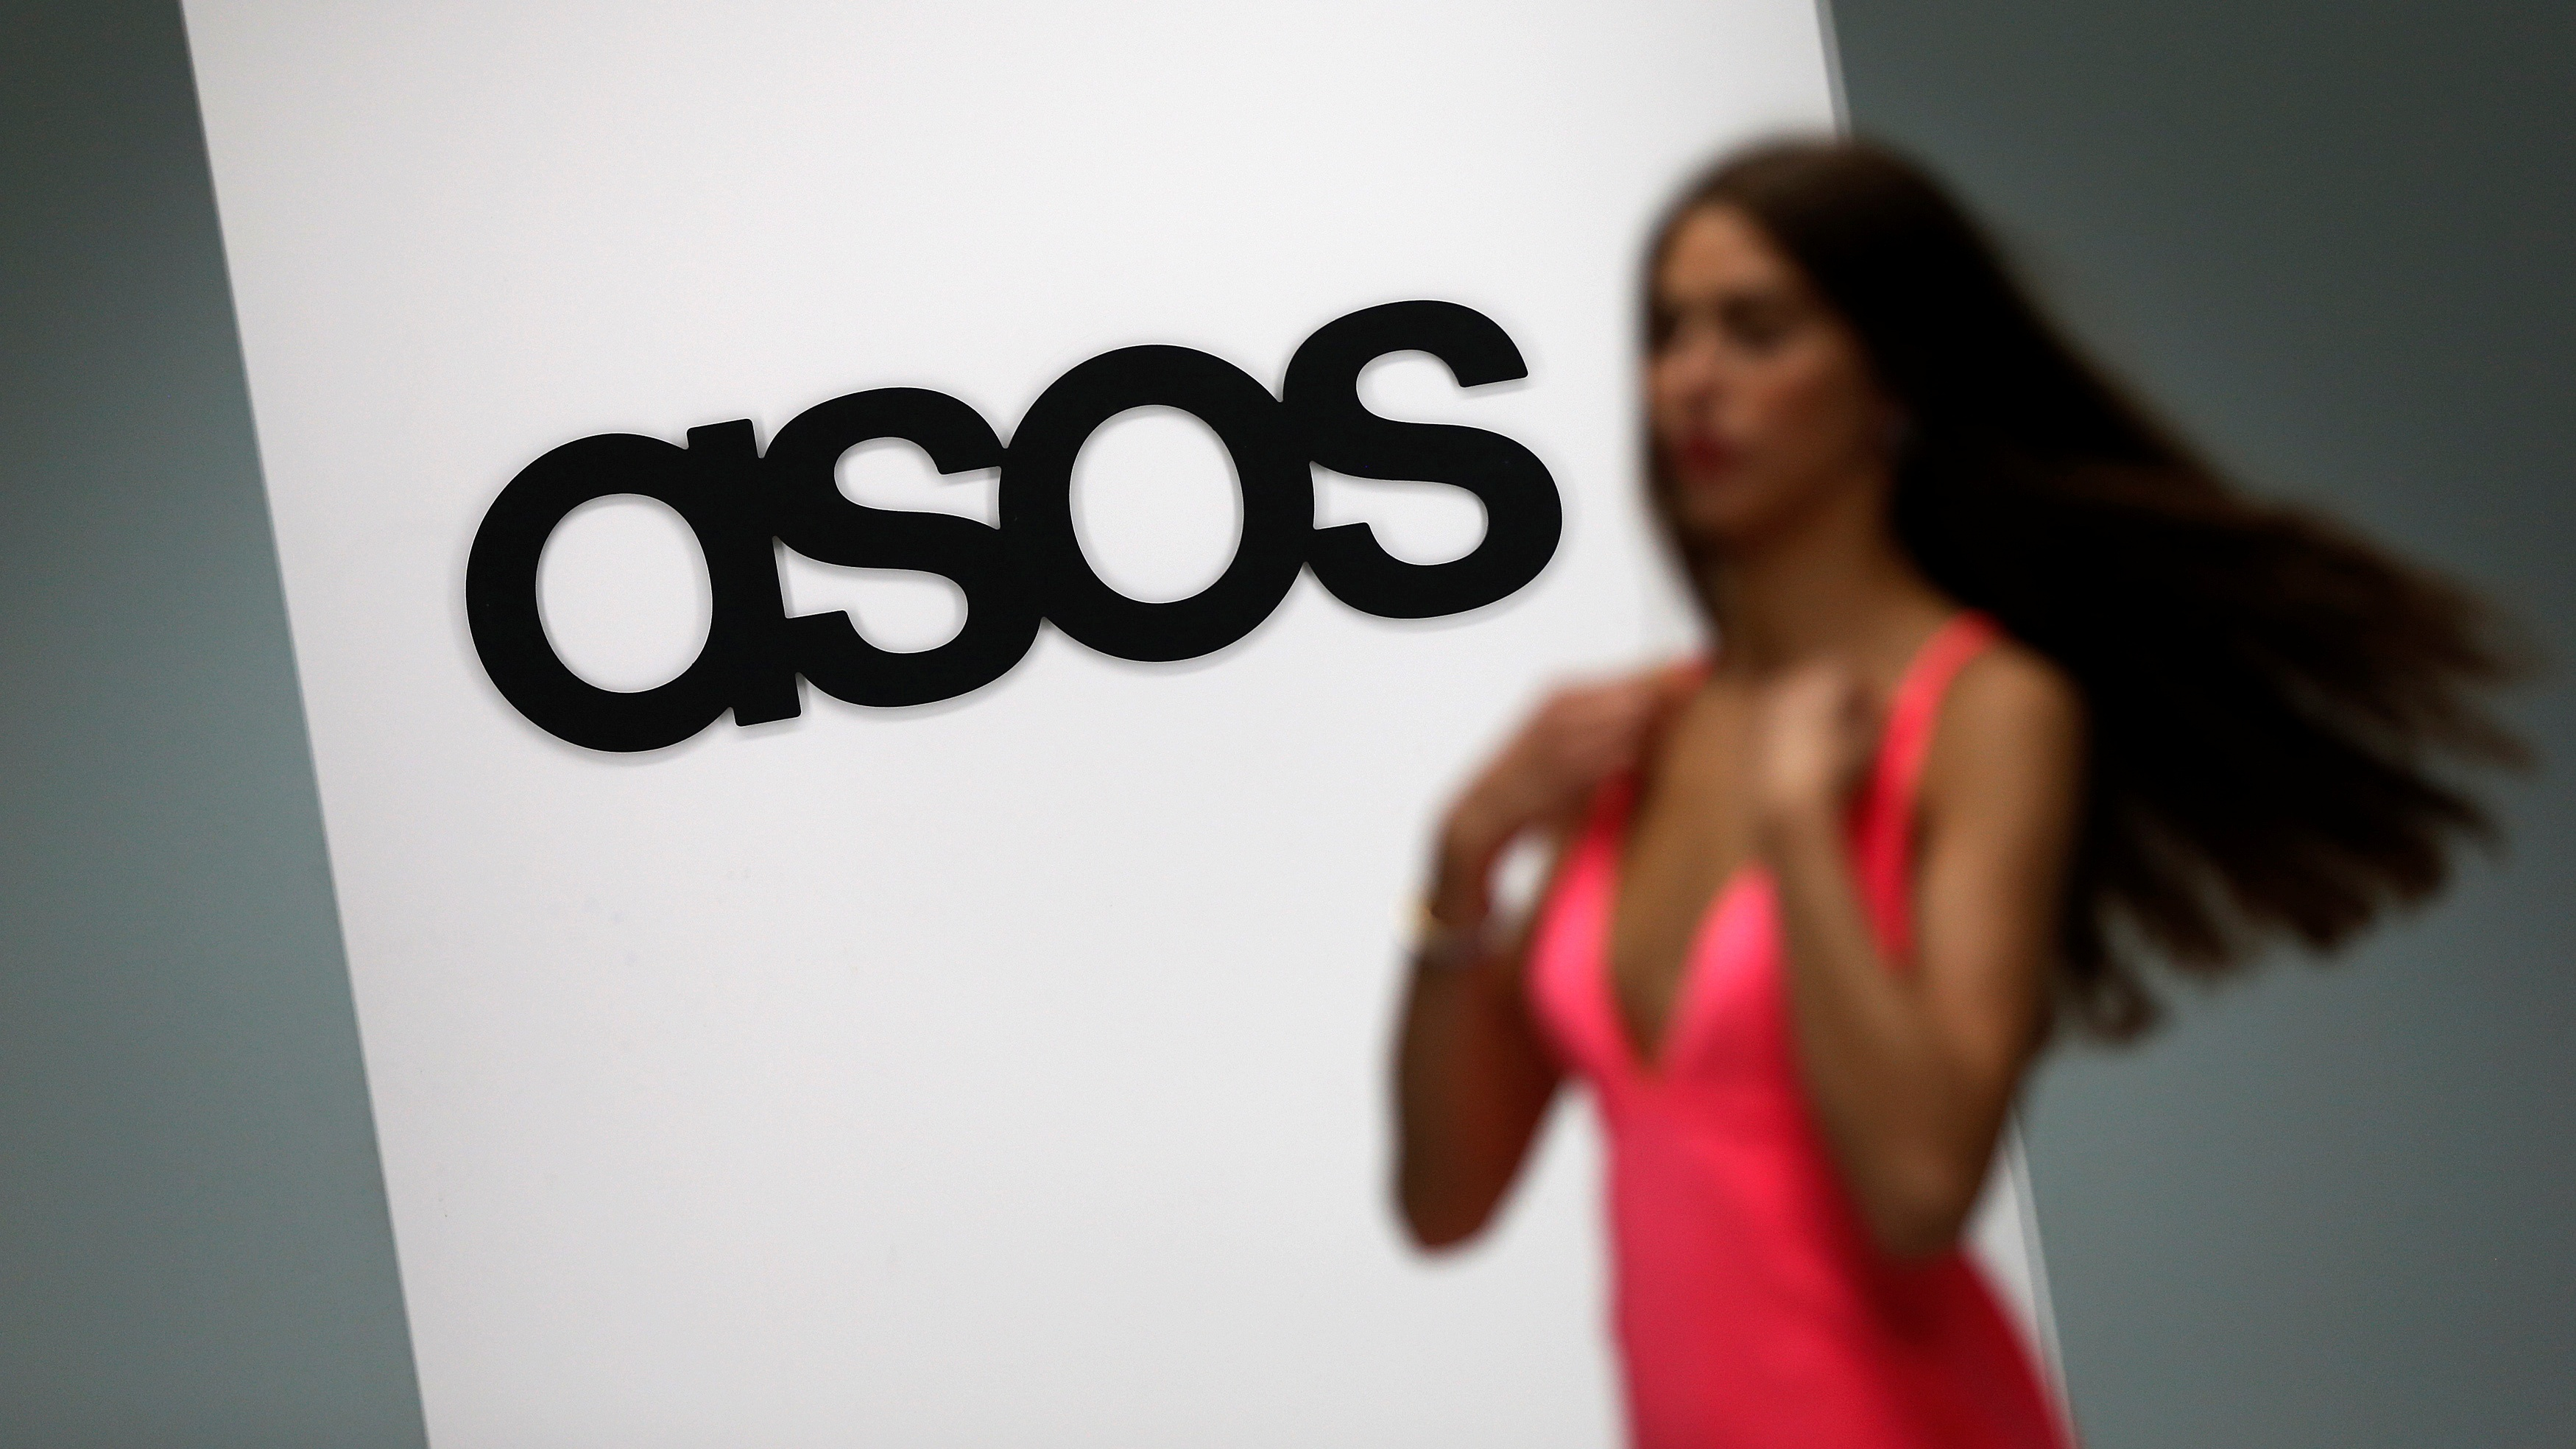 A model walks on an in-house catwalk at the ASOS headquarters in London April 1, 2014. REUTERS/Suzanne Plunkett/File Photo